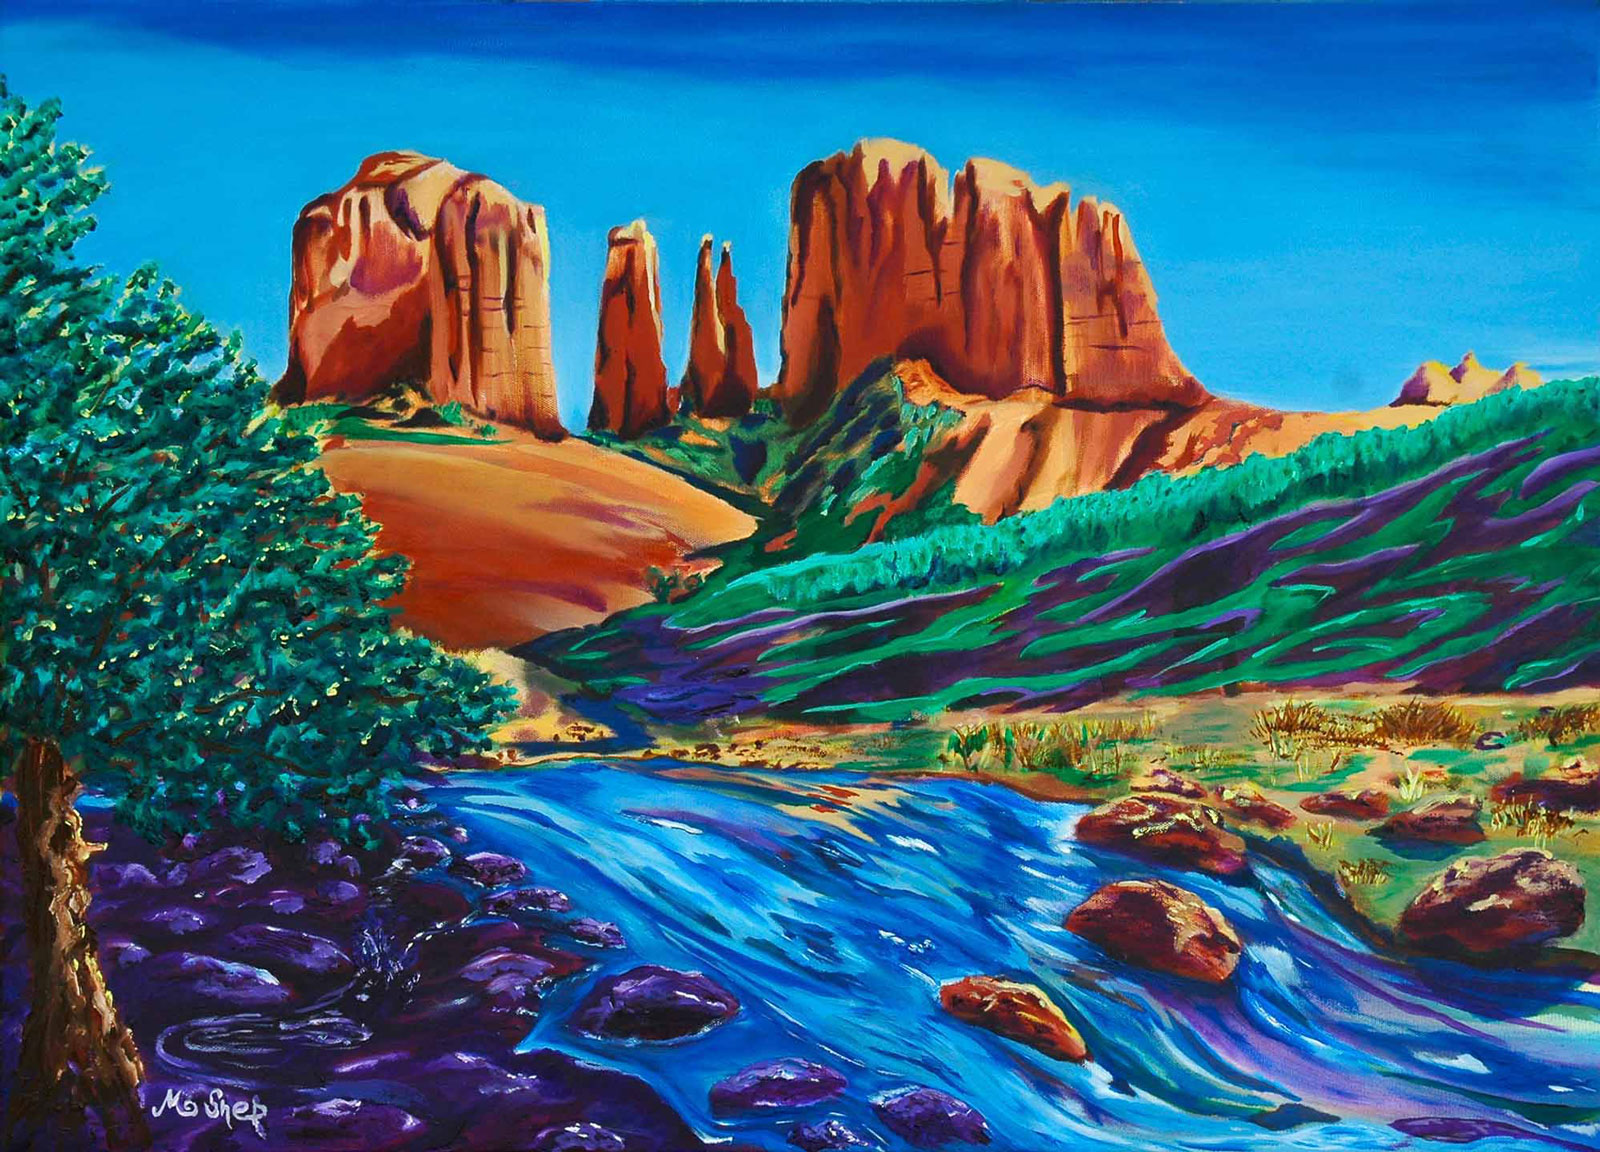 Cathedral Rock by McShep